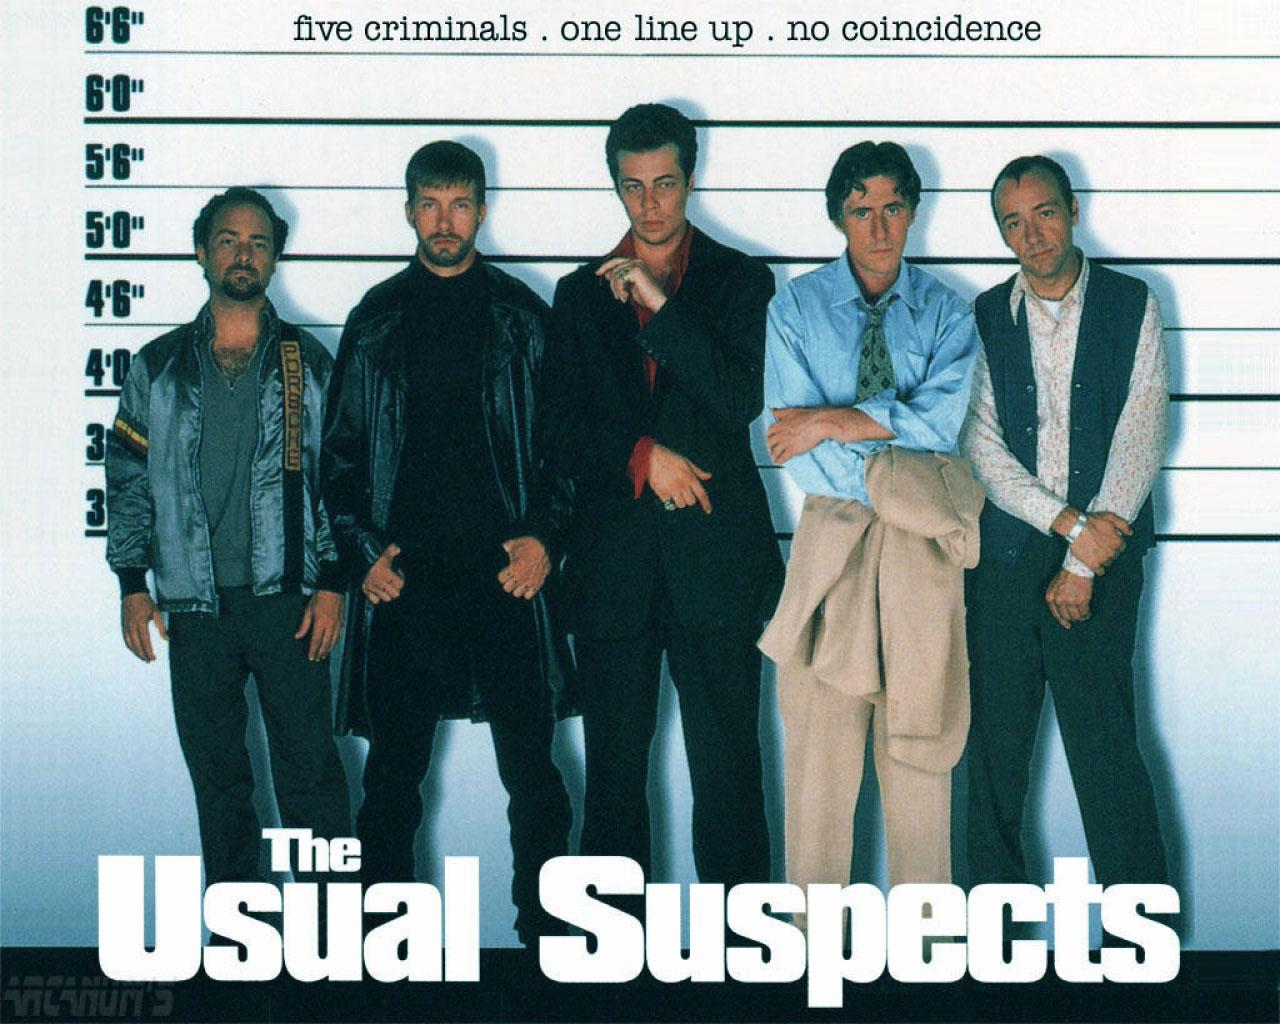 The Usual Suspects Wallpaper #1 1280 x 1024